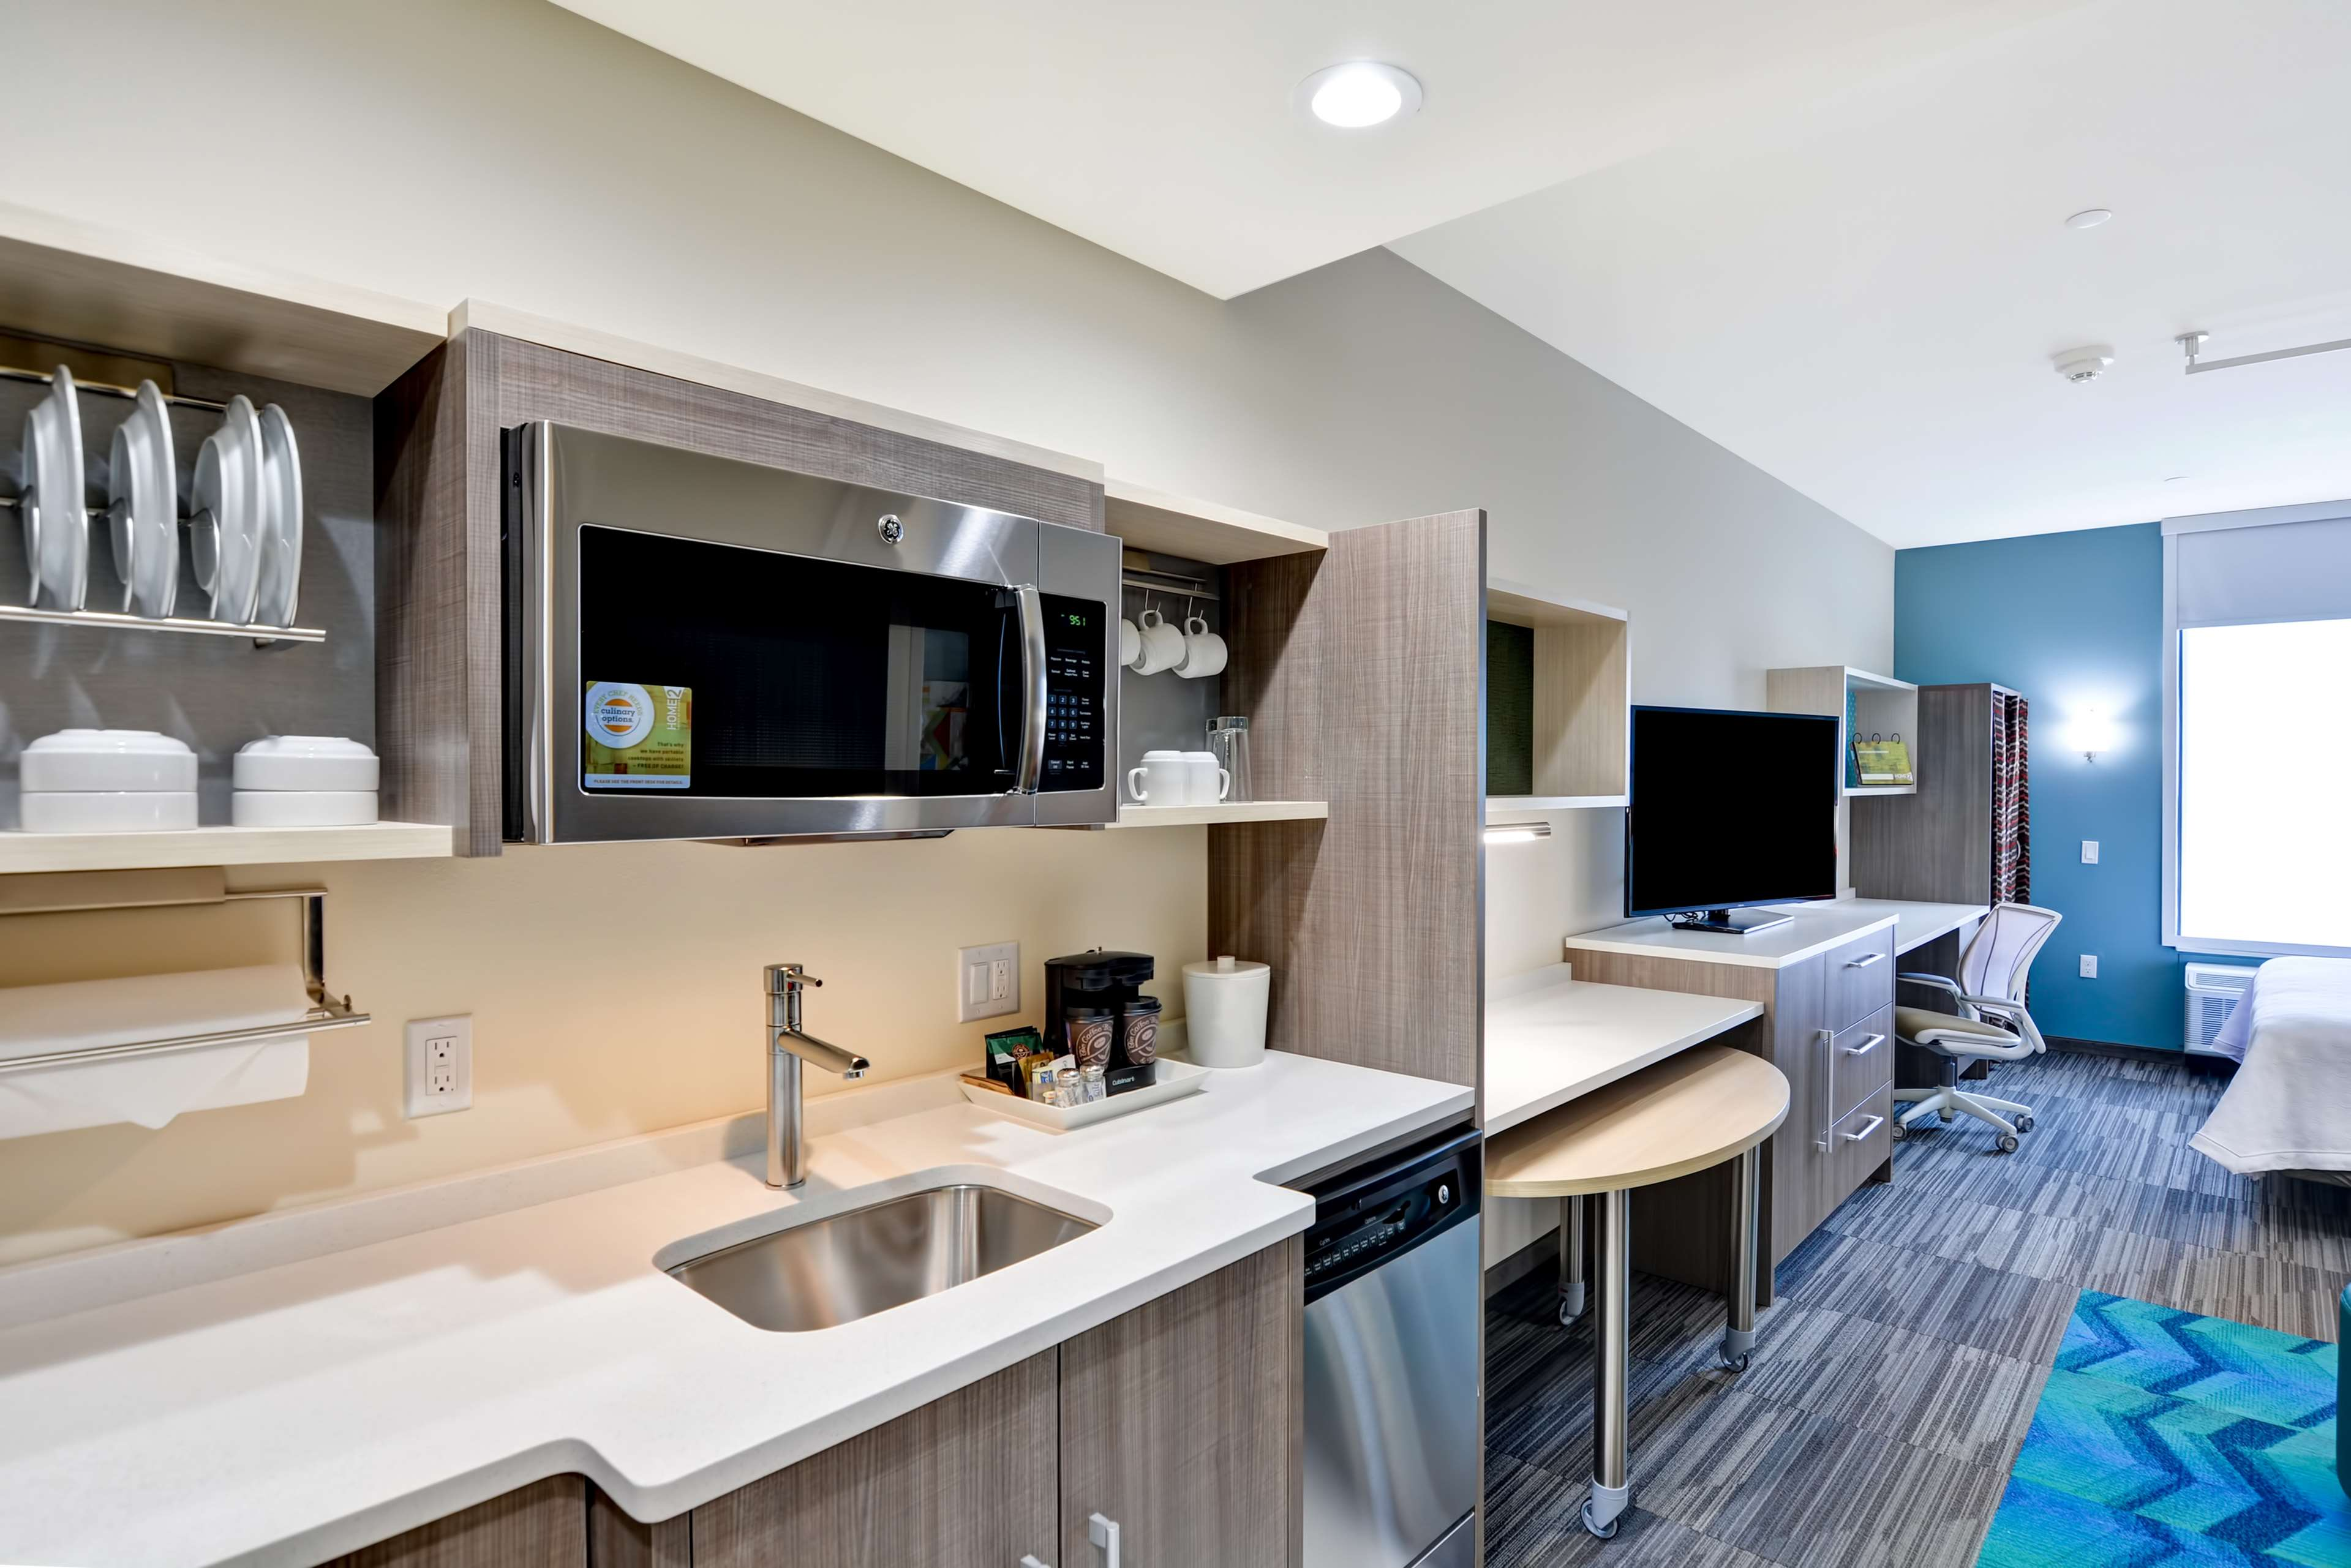 Home2 Suites by Hilton OKC Midwest City Tinker AFB image 18